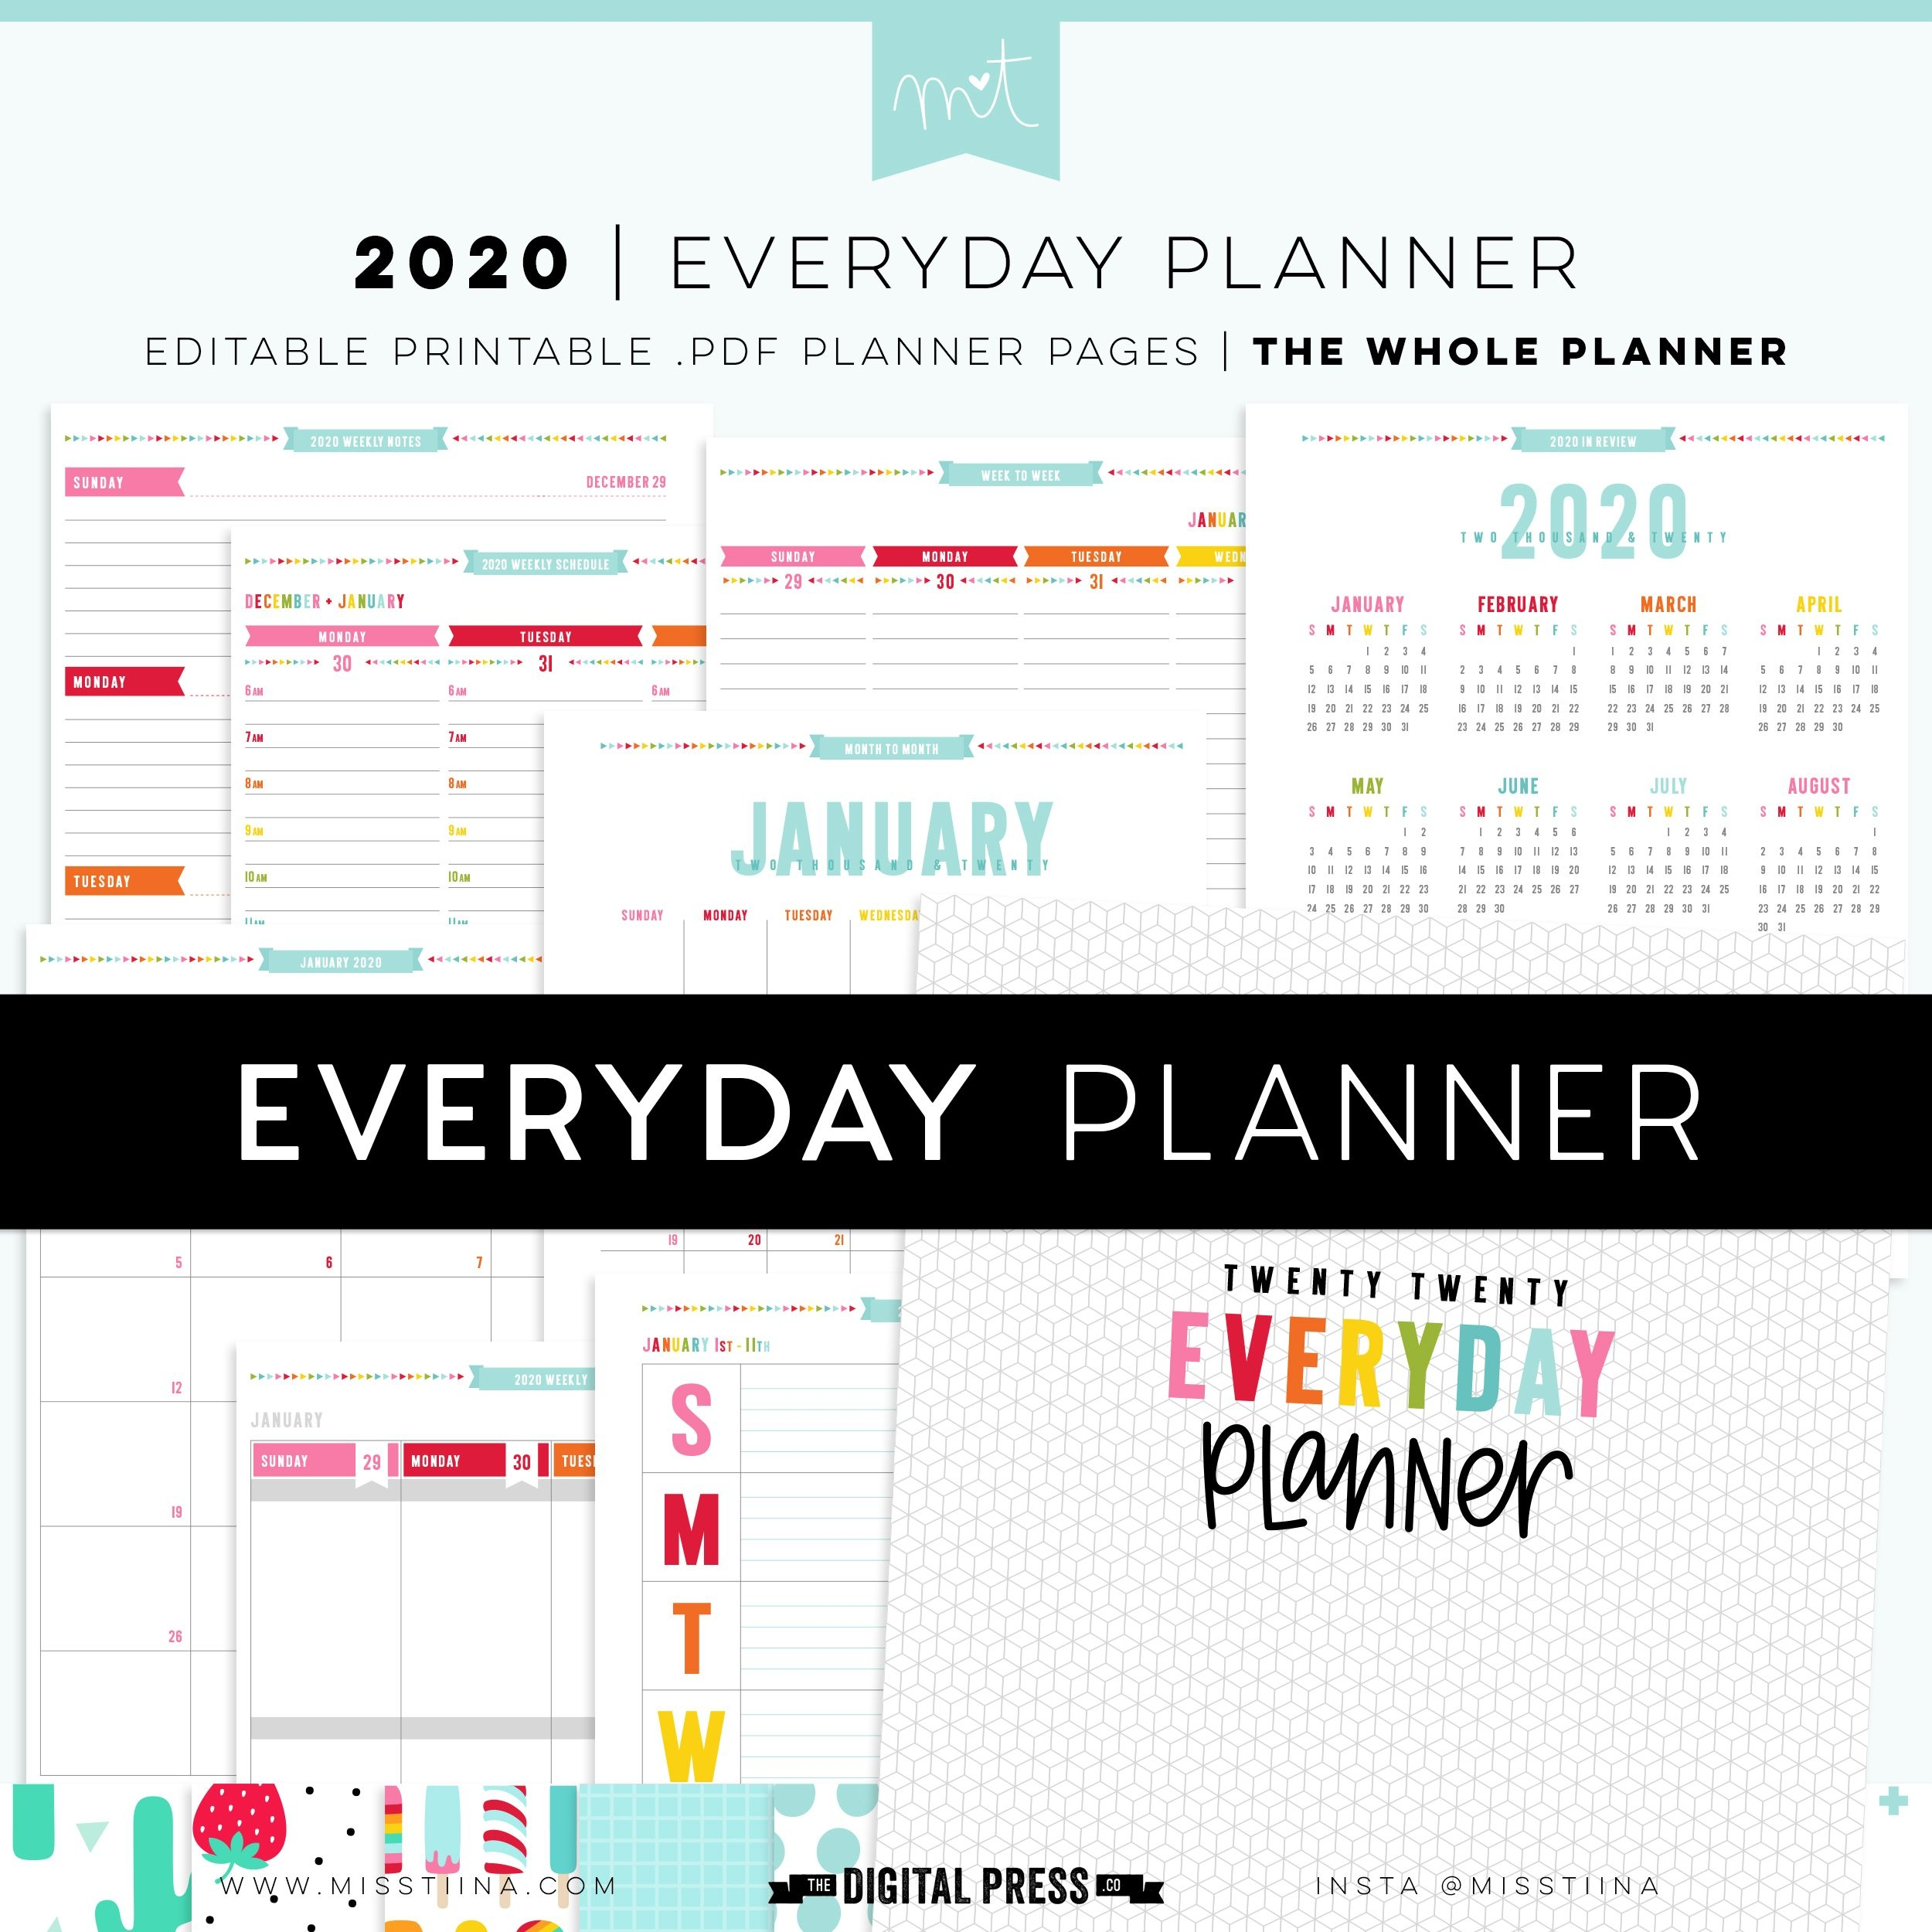 2020 Everyday Planner Whole - Now Editable By Miss Tiina